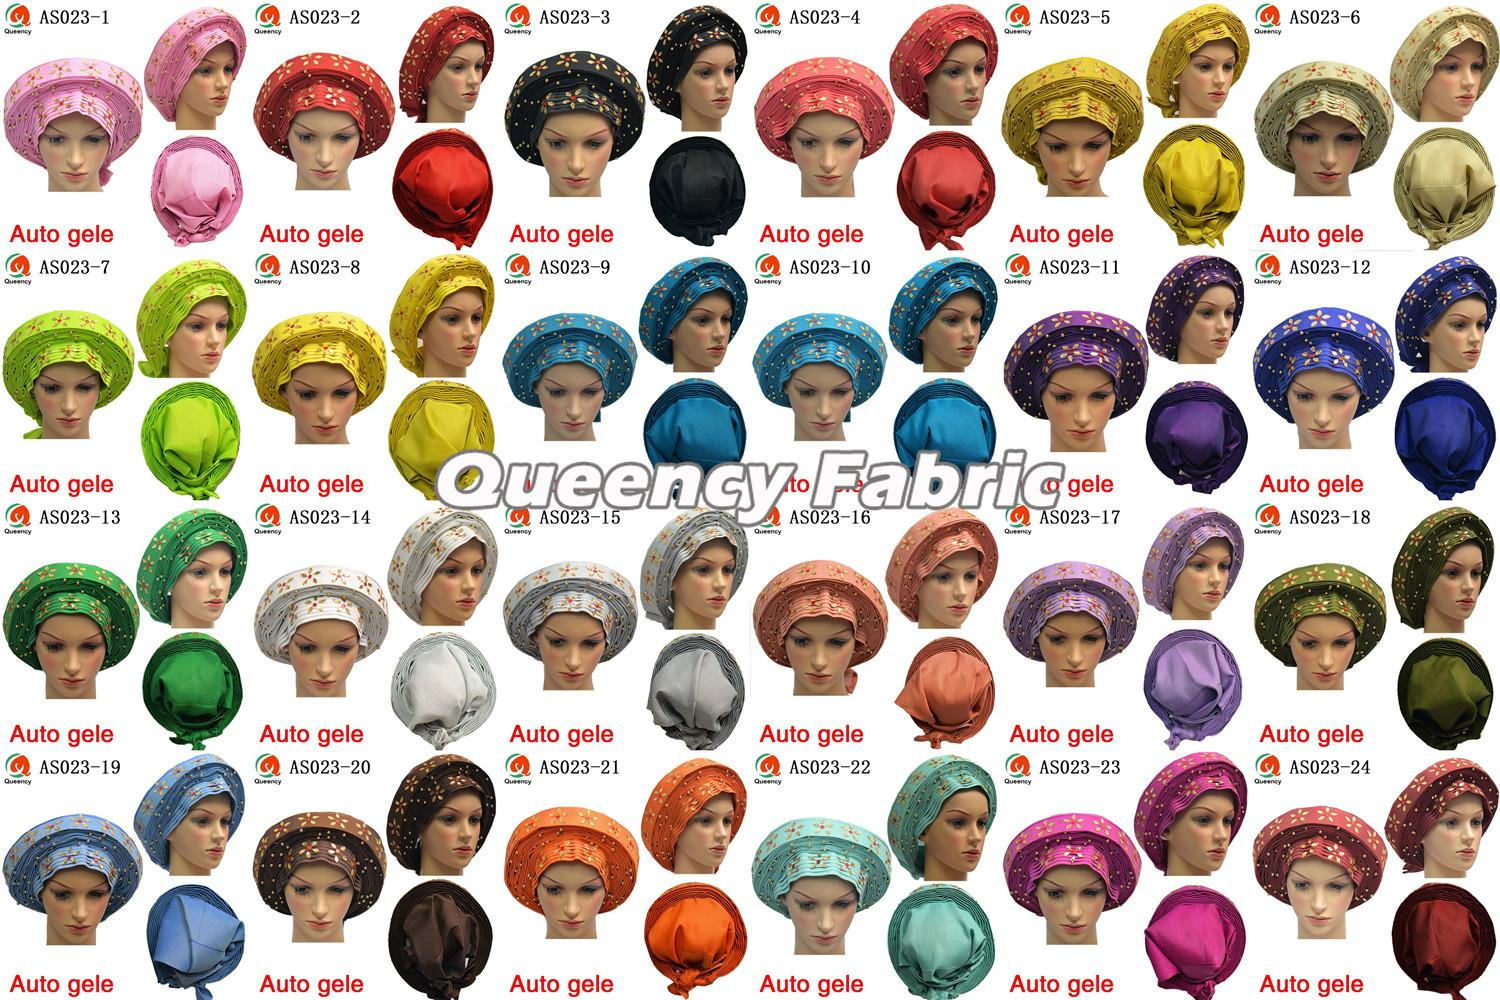 Auto Gele Headtie Collection